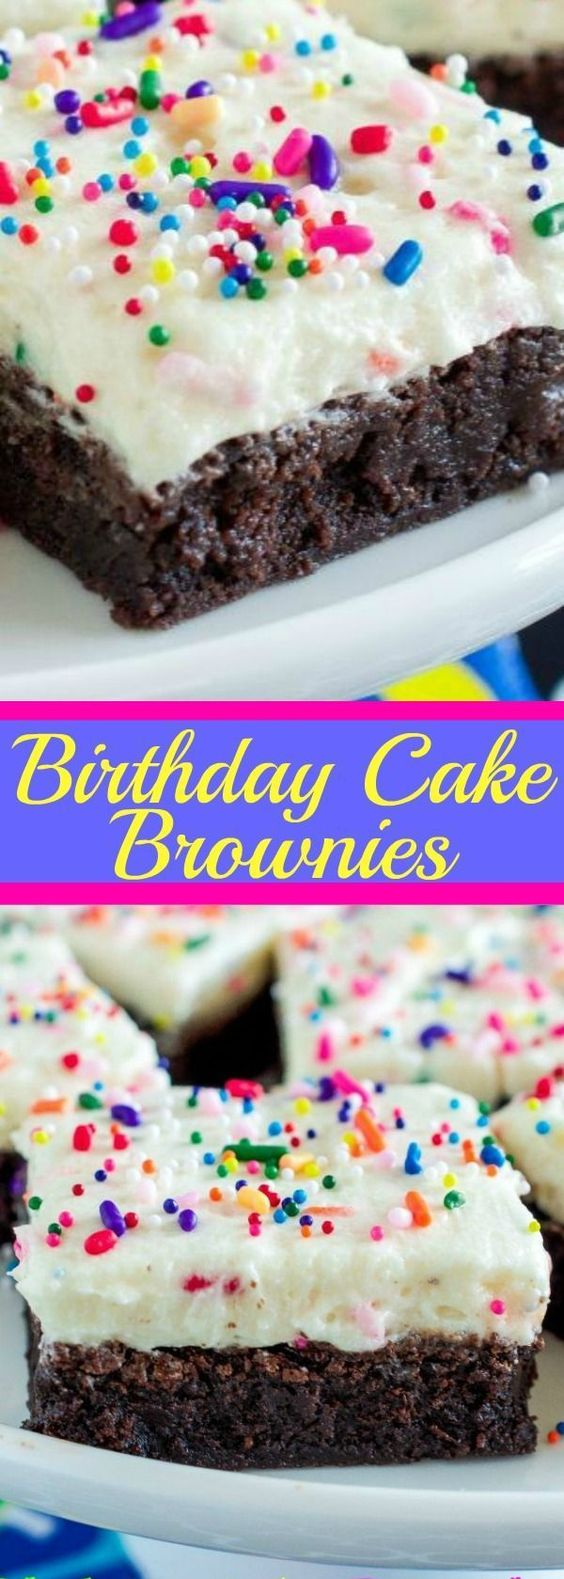 Birthday Cake Brownies